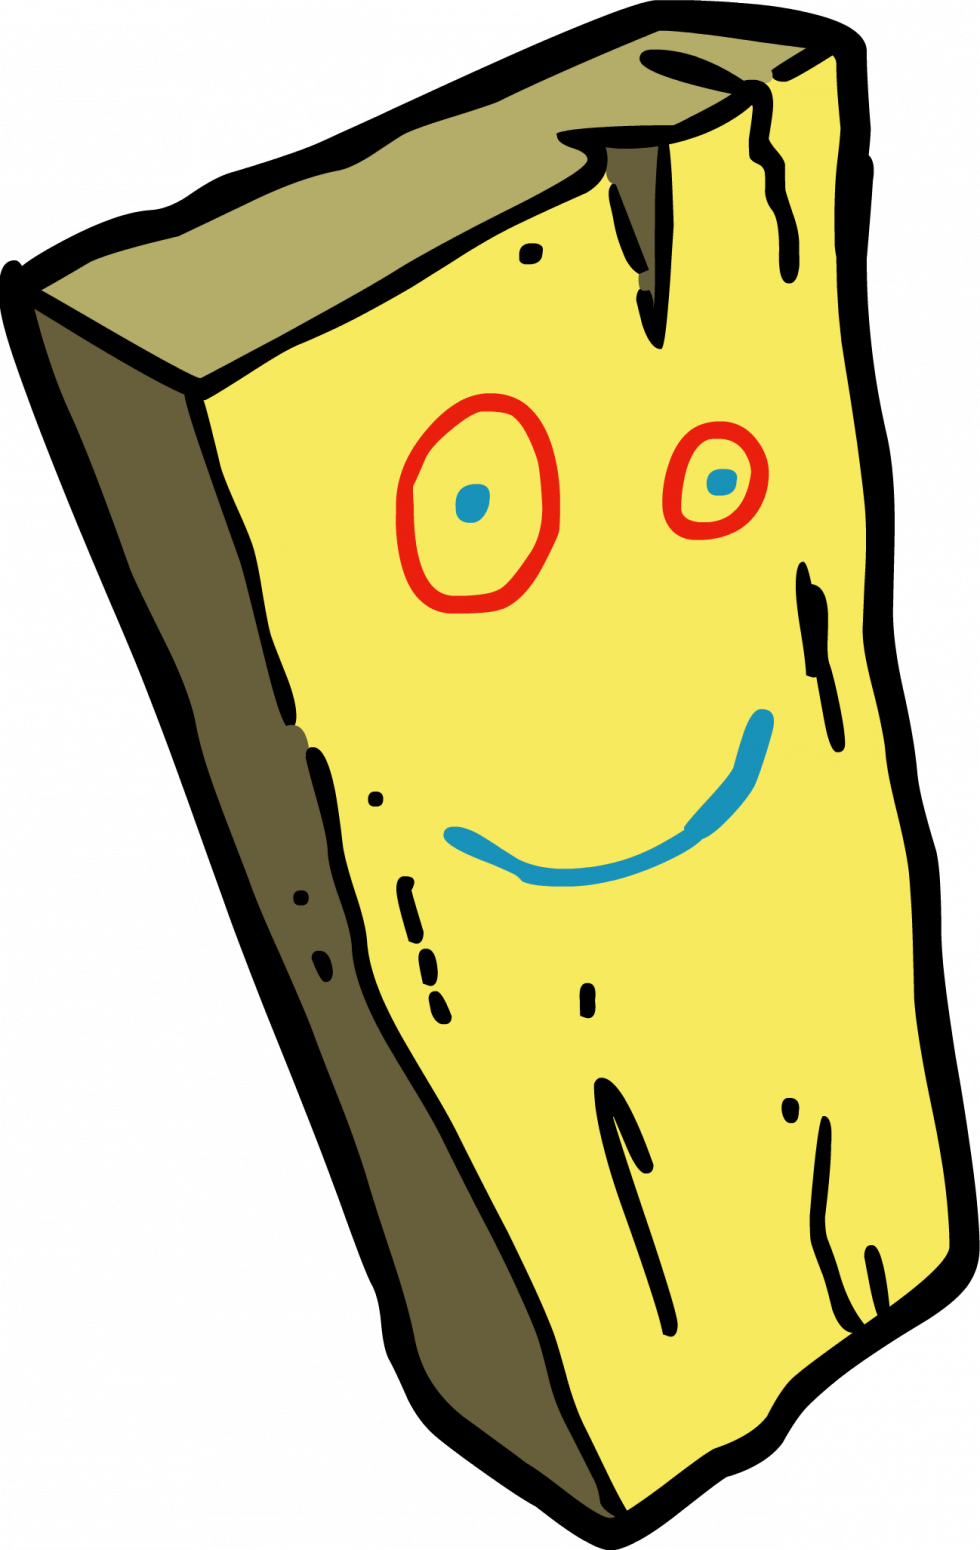 phish net have you seen my buddy plank